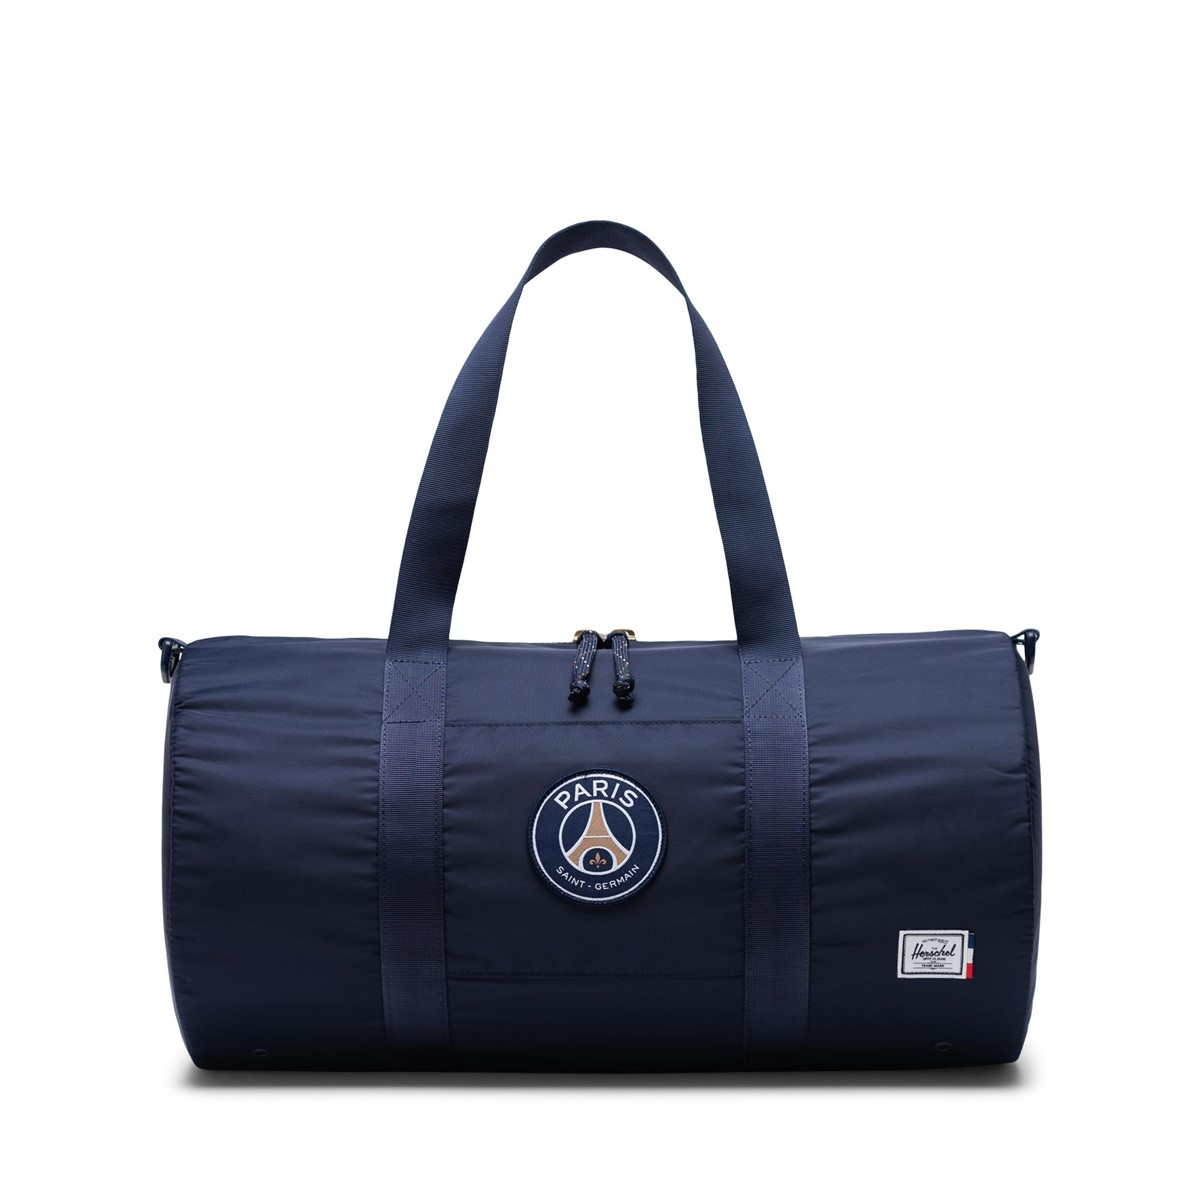 Paris Saint-Germain Sac de sport Sutton Mid-Volume marine